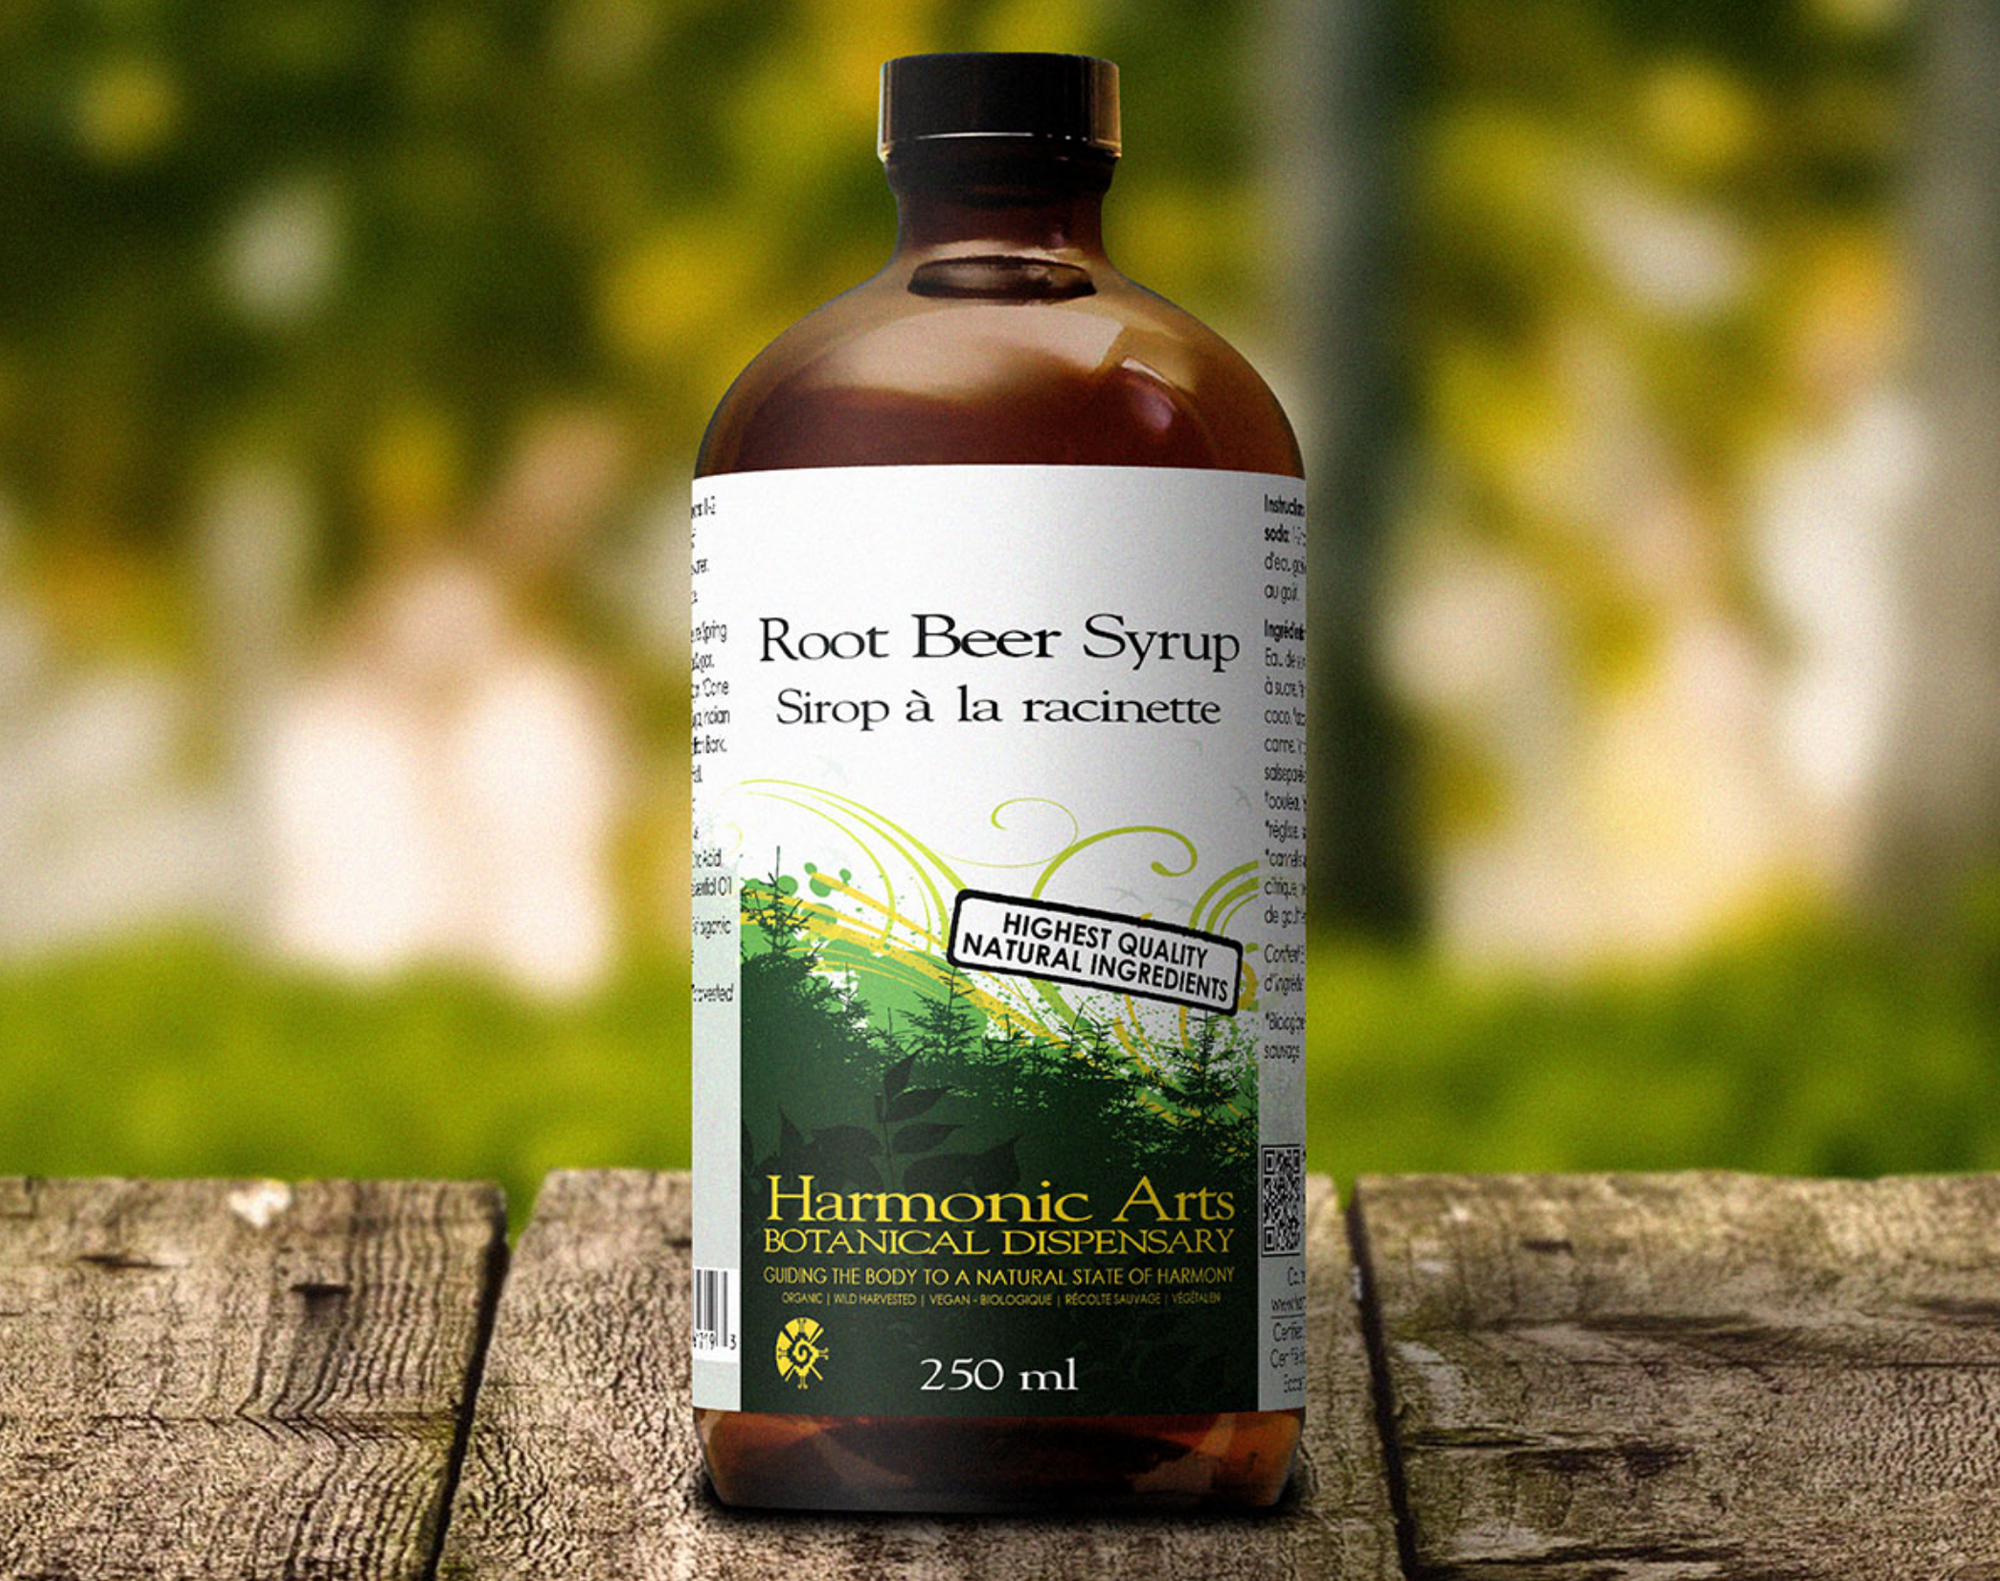 Harmonic Arts - Root Beer Syrup